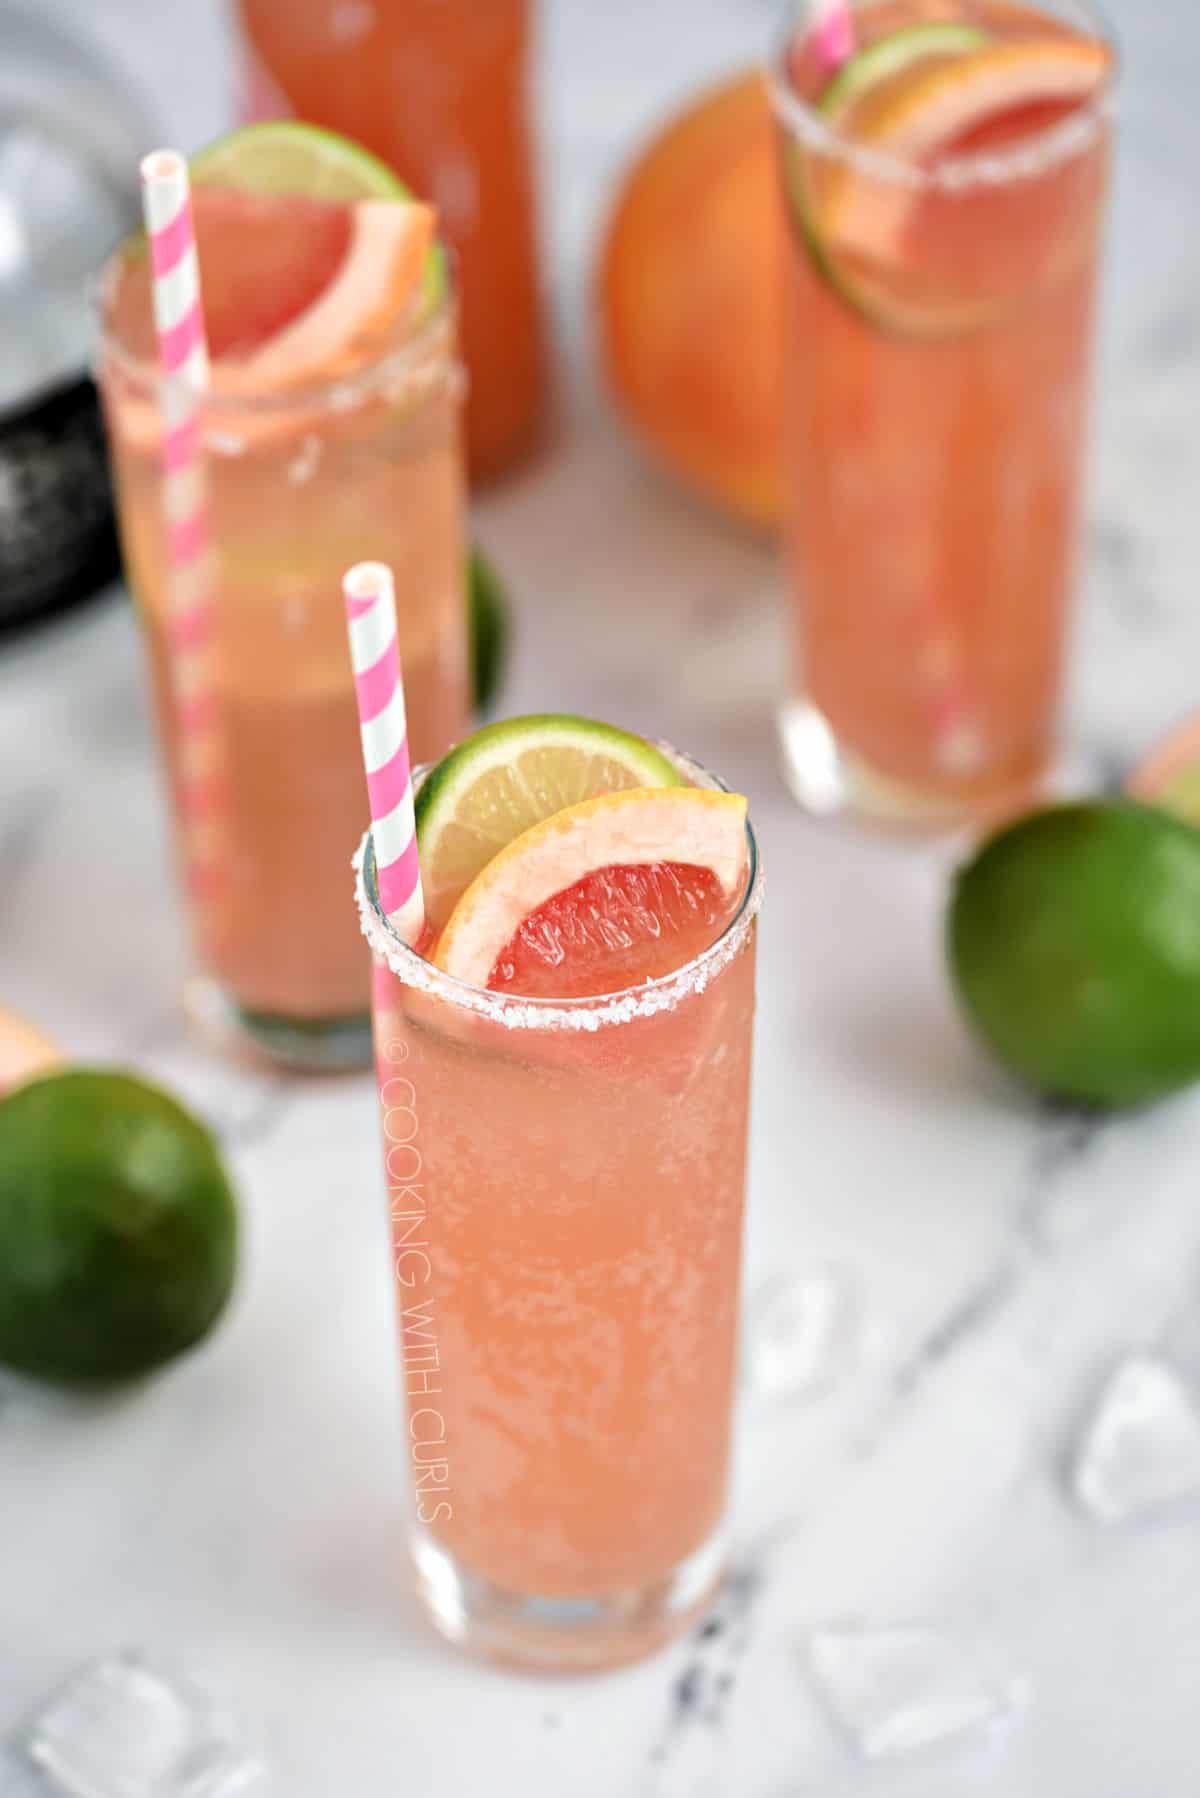 Three bubbly, pink cocktails in tall glasses garnished with a slice of lime and grapefruit with a pink and white striped straw.